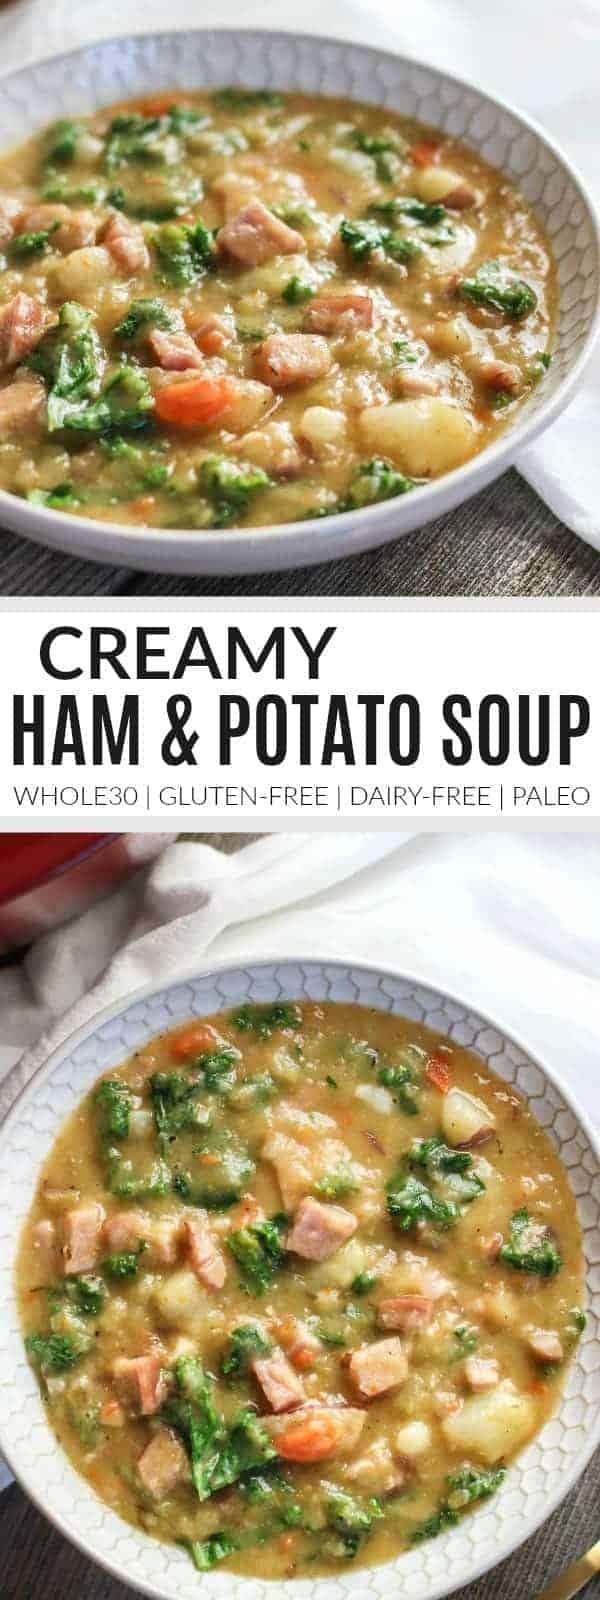 Creamy Ham and Potato Soup | Whole30 soup | Paleo soup recipe | Gluten-free soup recipe | dairy-free soup recipe | healthy soup recipe | whole30 recipes || The Real Food Dietitians #whole30soup #whole30 #glutenfreesoup #dairyfreesoup